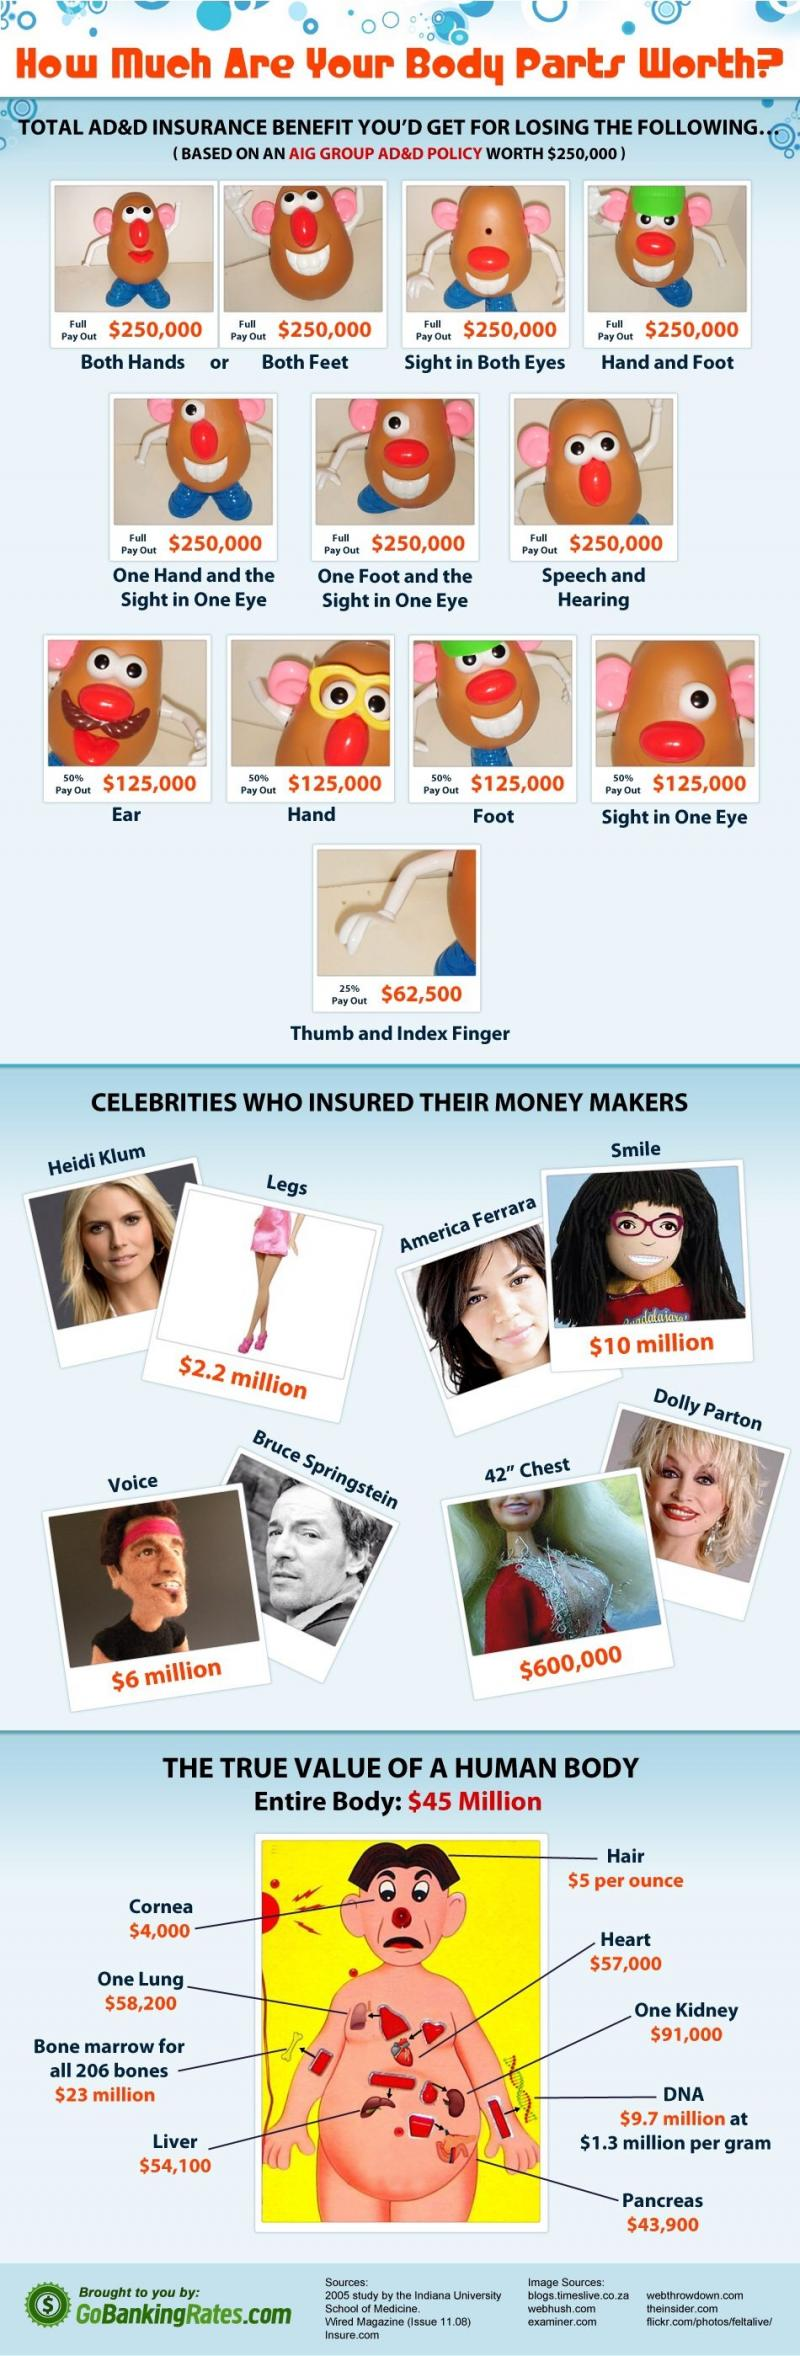 How Much Your Body Parts Worth #Infographic